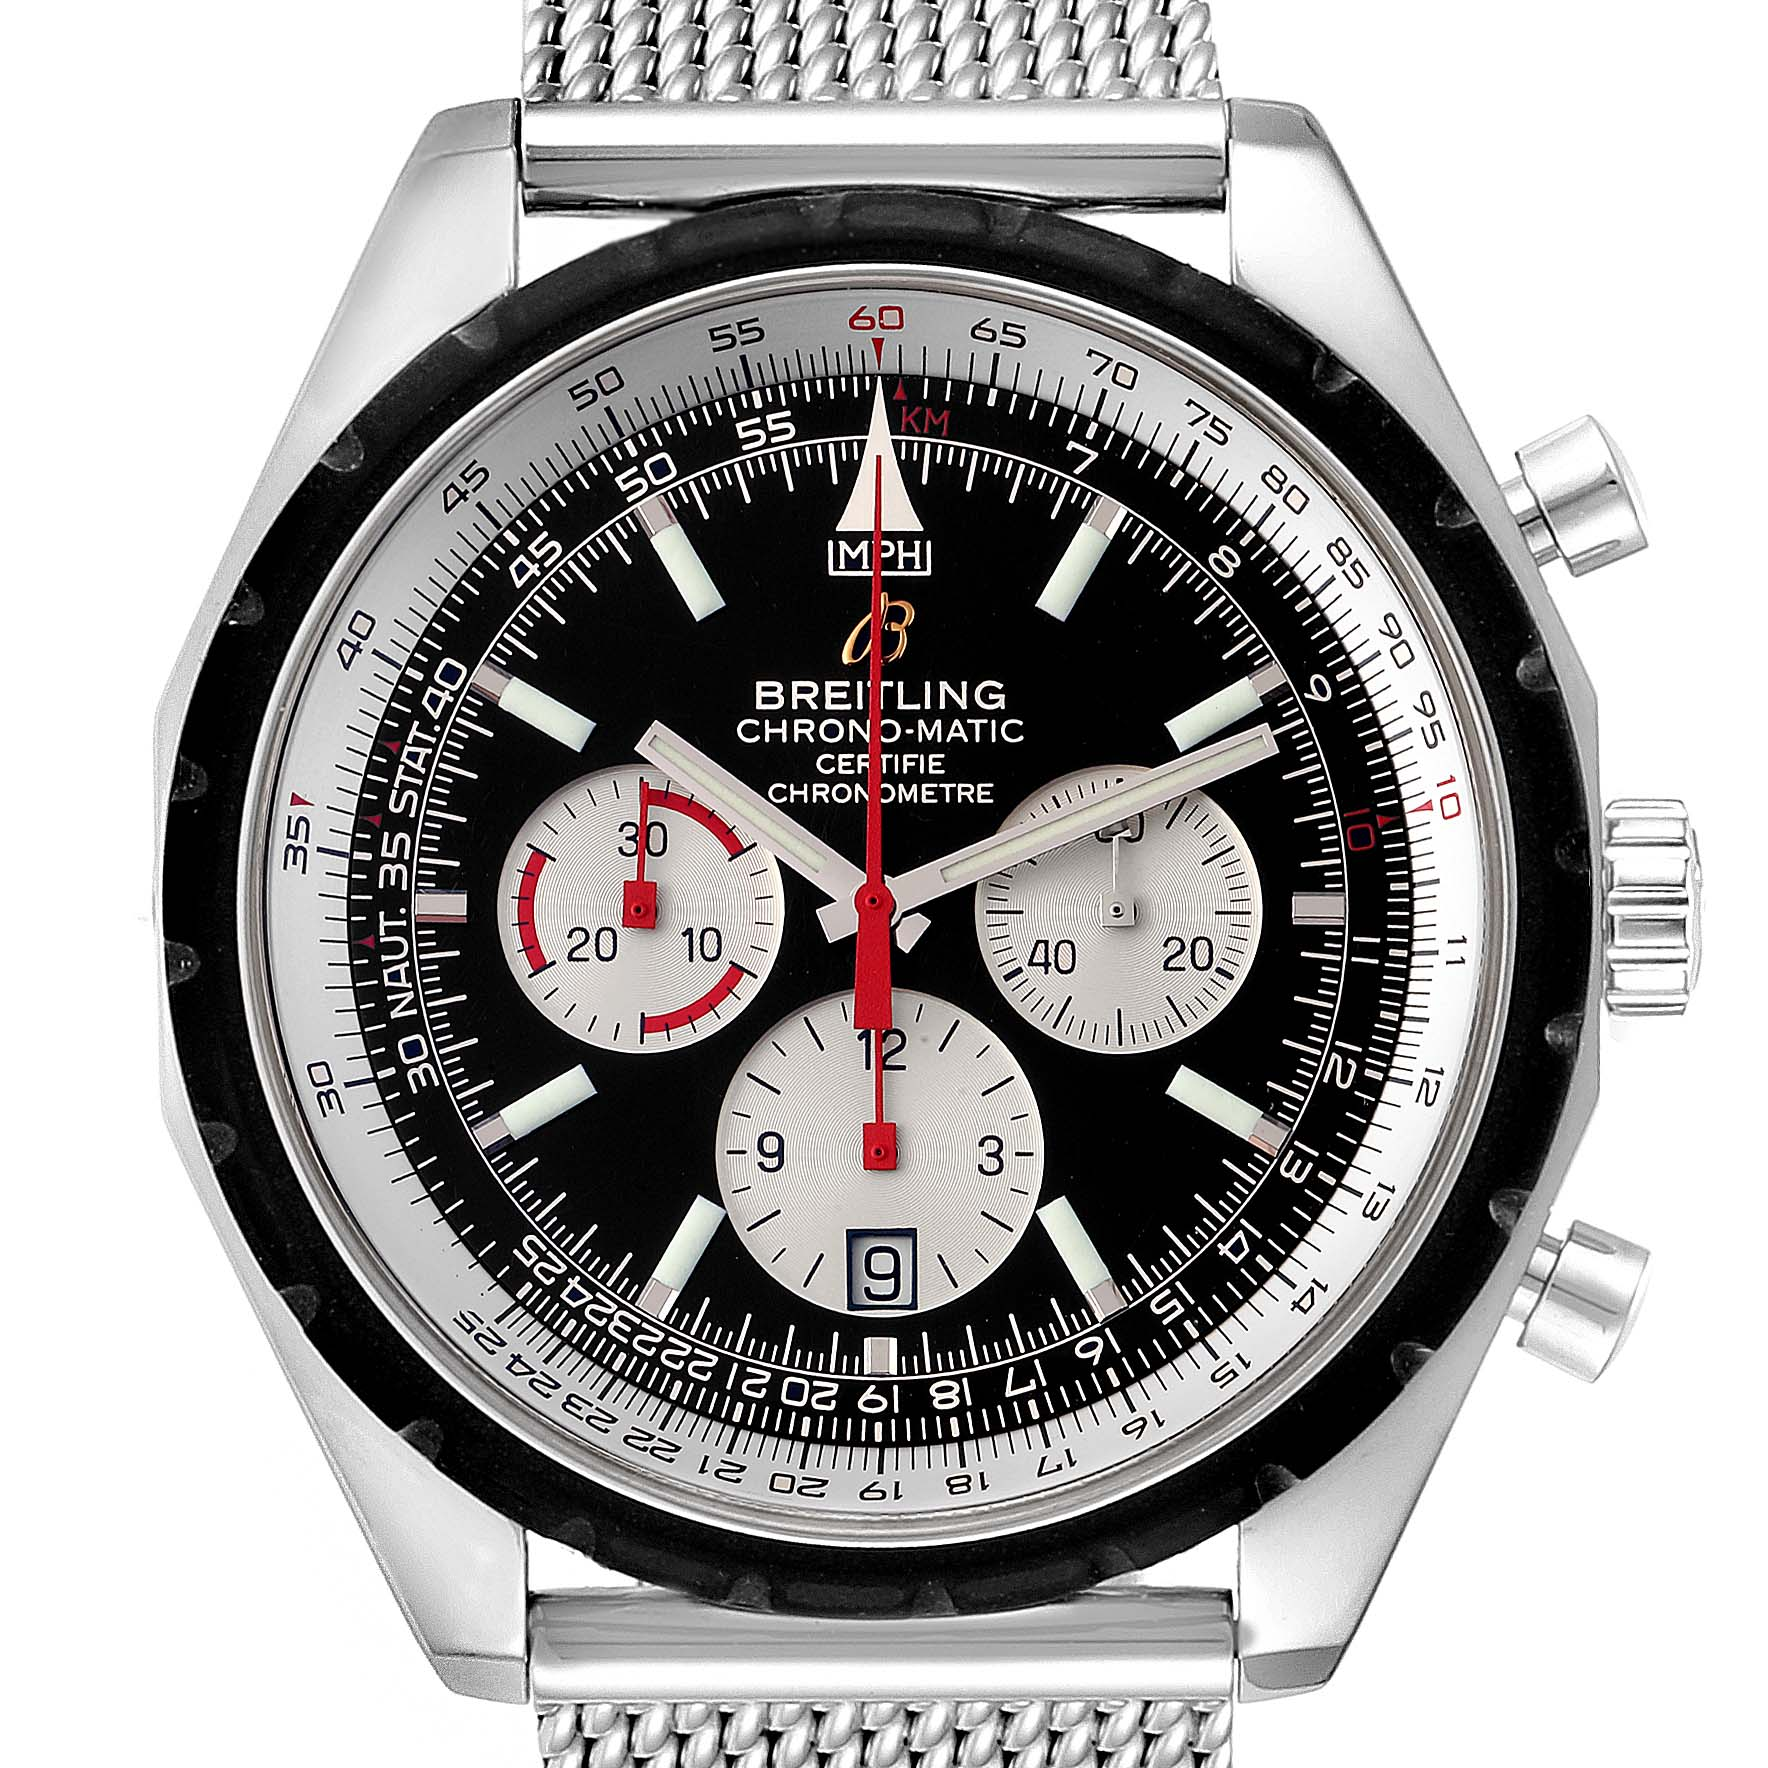 Breitling Chronomatic Chronograph Steel Mens Watch A41360 SwissWatchExpo